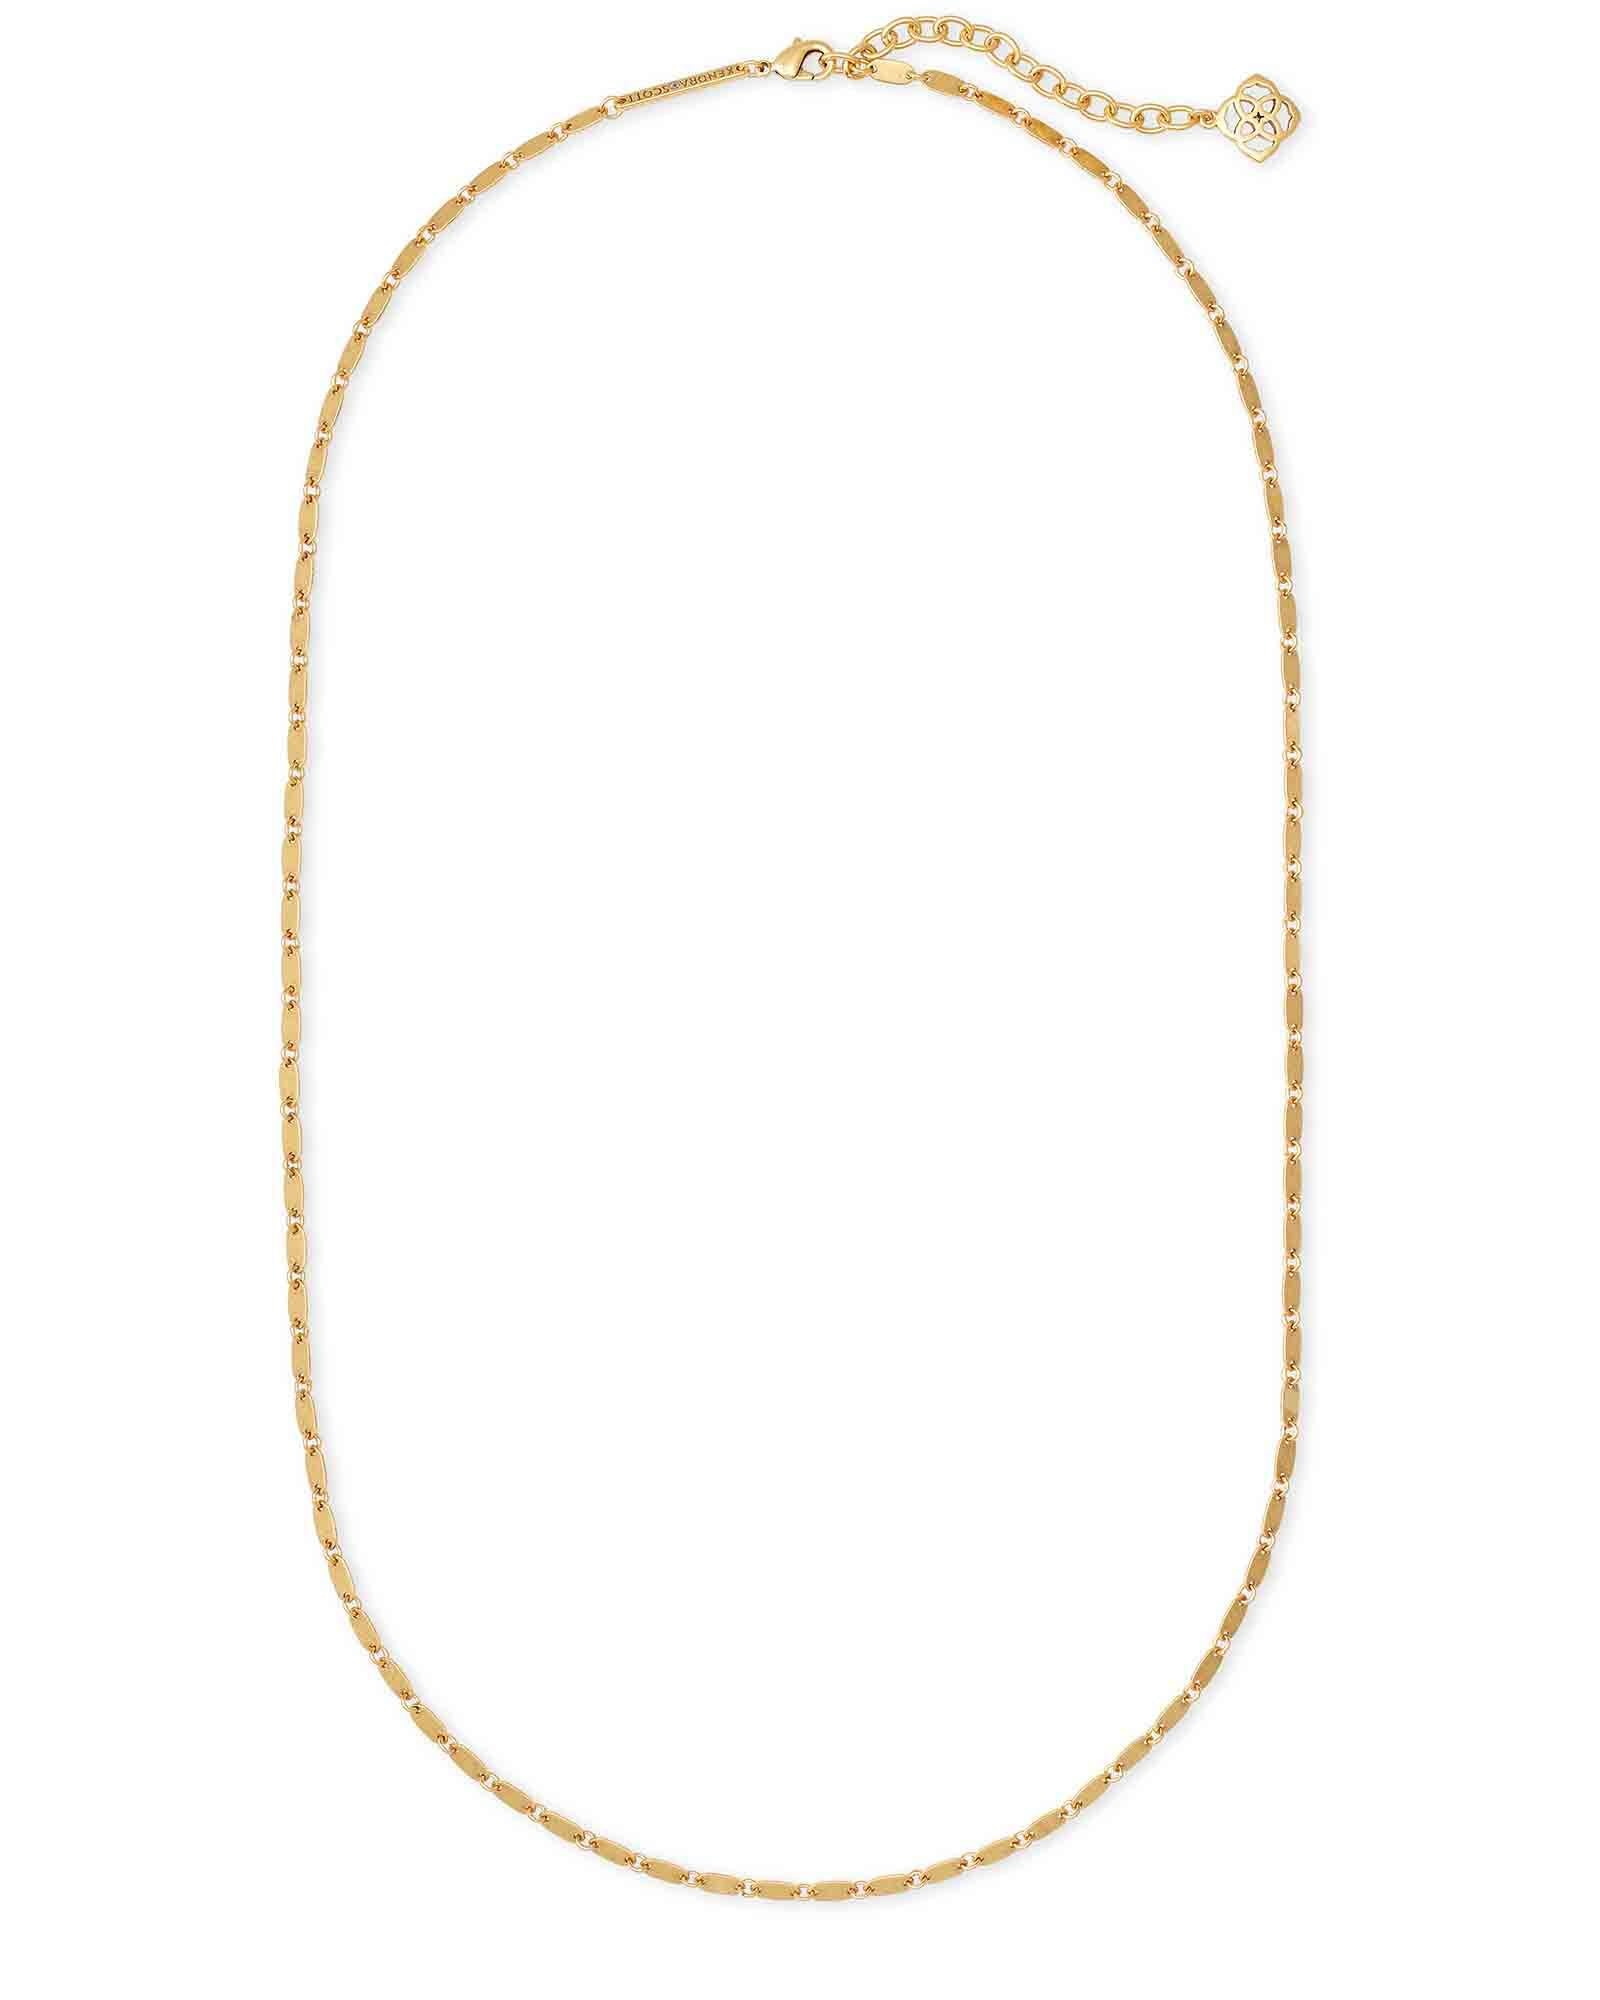 Lola Chain Necklace in Vintage Gold